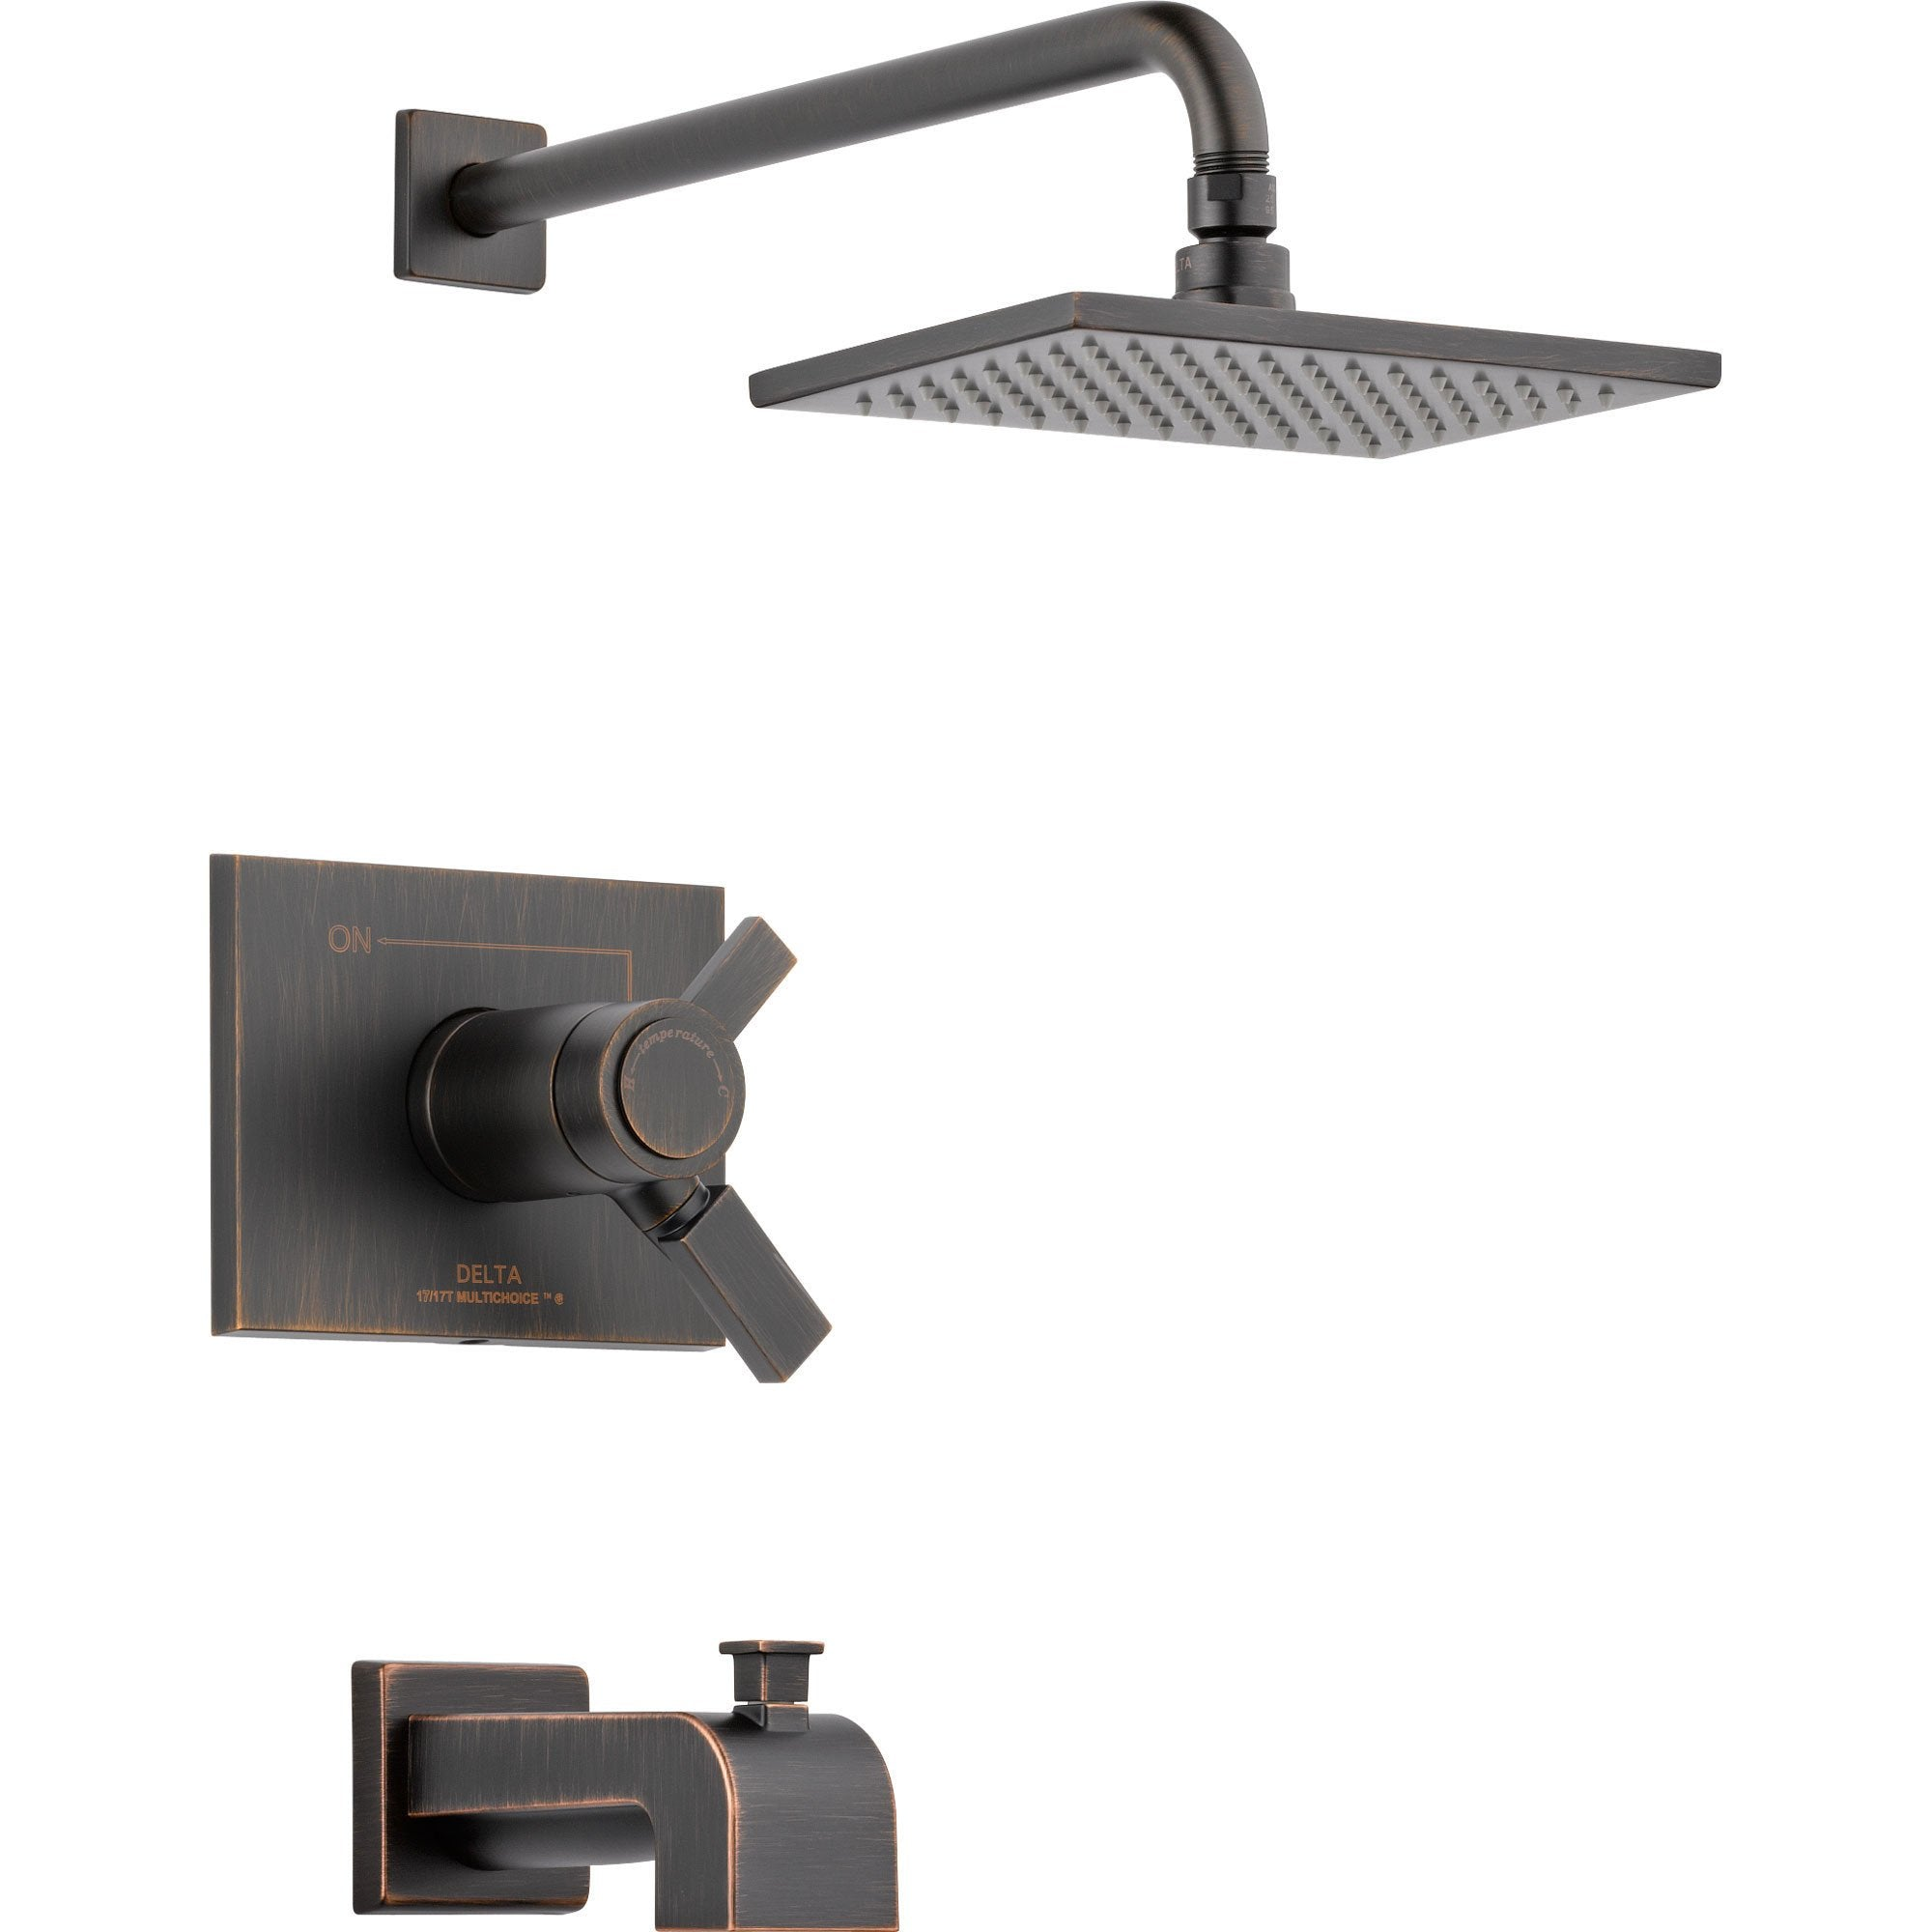 Delta Vero Thermostatic Dual Control Venetian Bronze Tub & Shower w/ Valve D531V